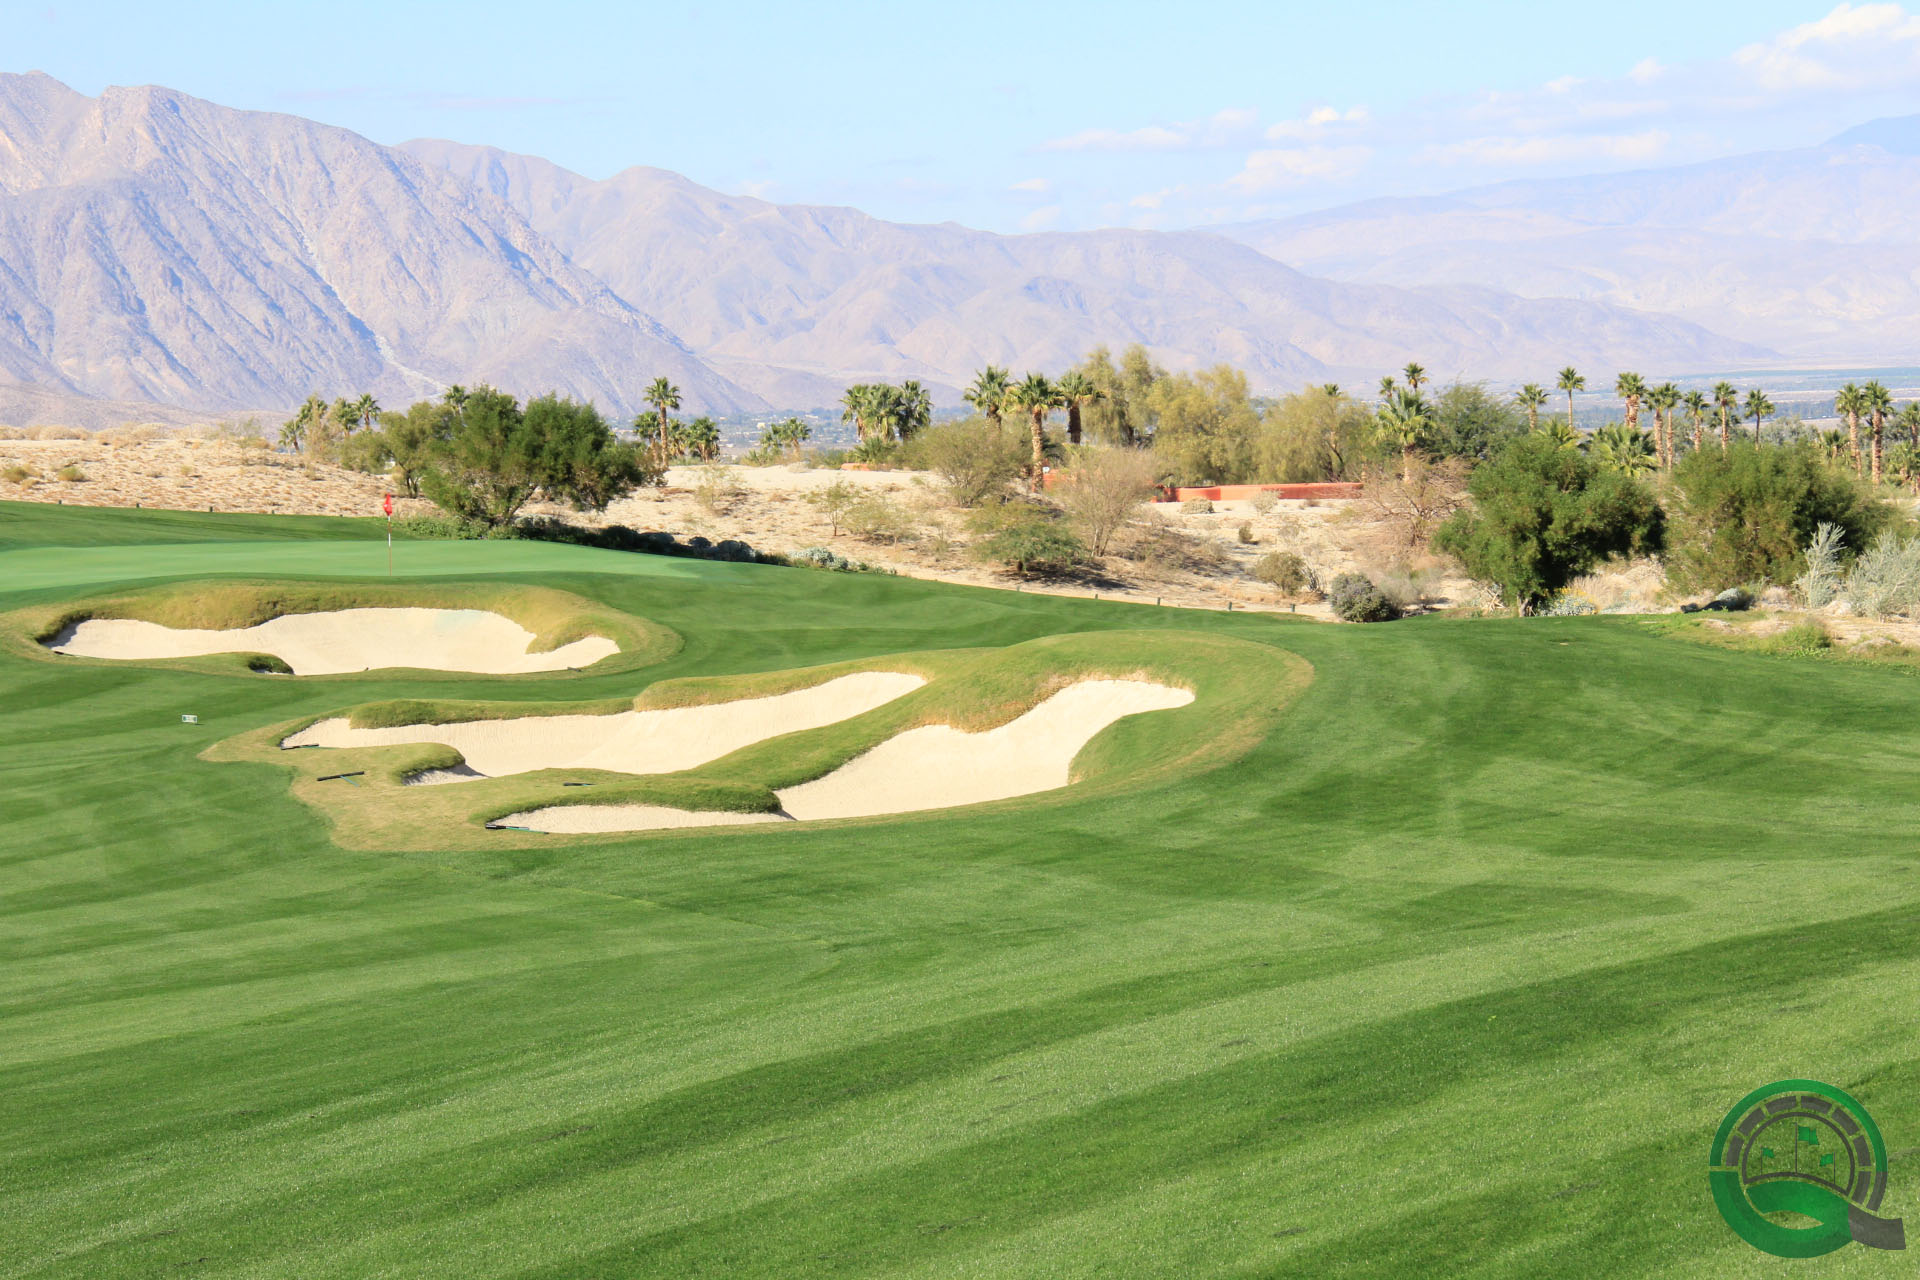 Rams Hill Golf Club Hole 7 Bunkers